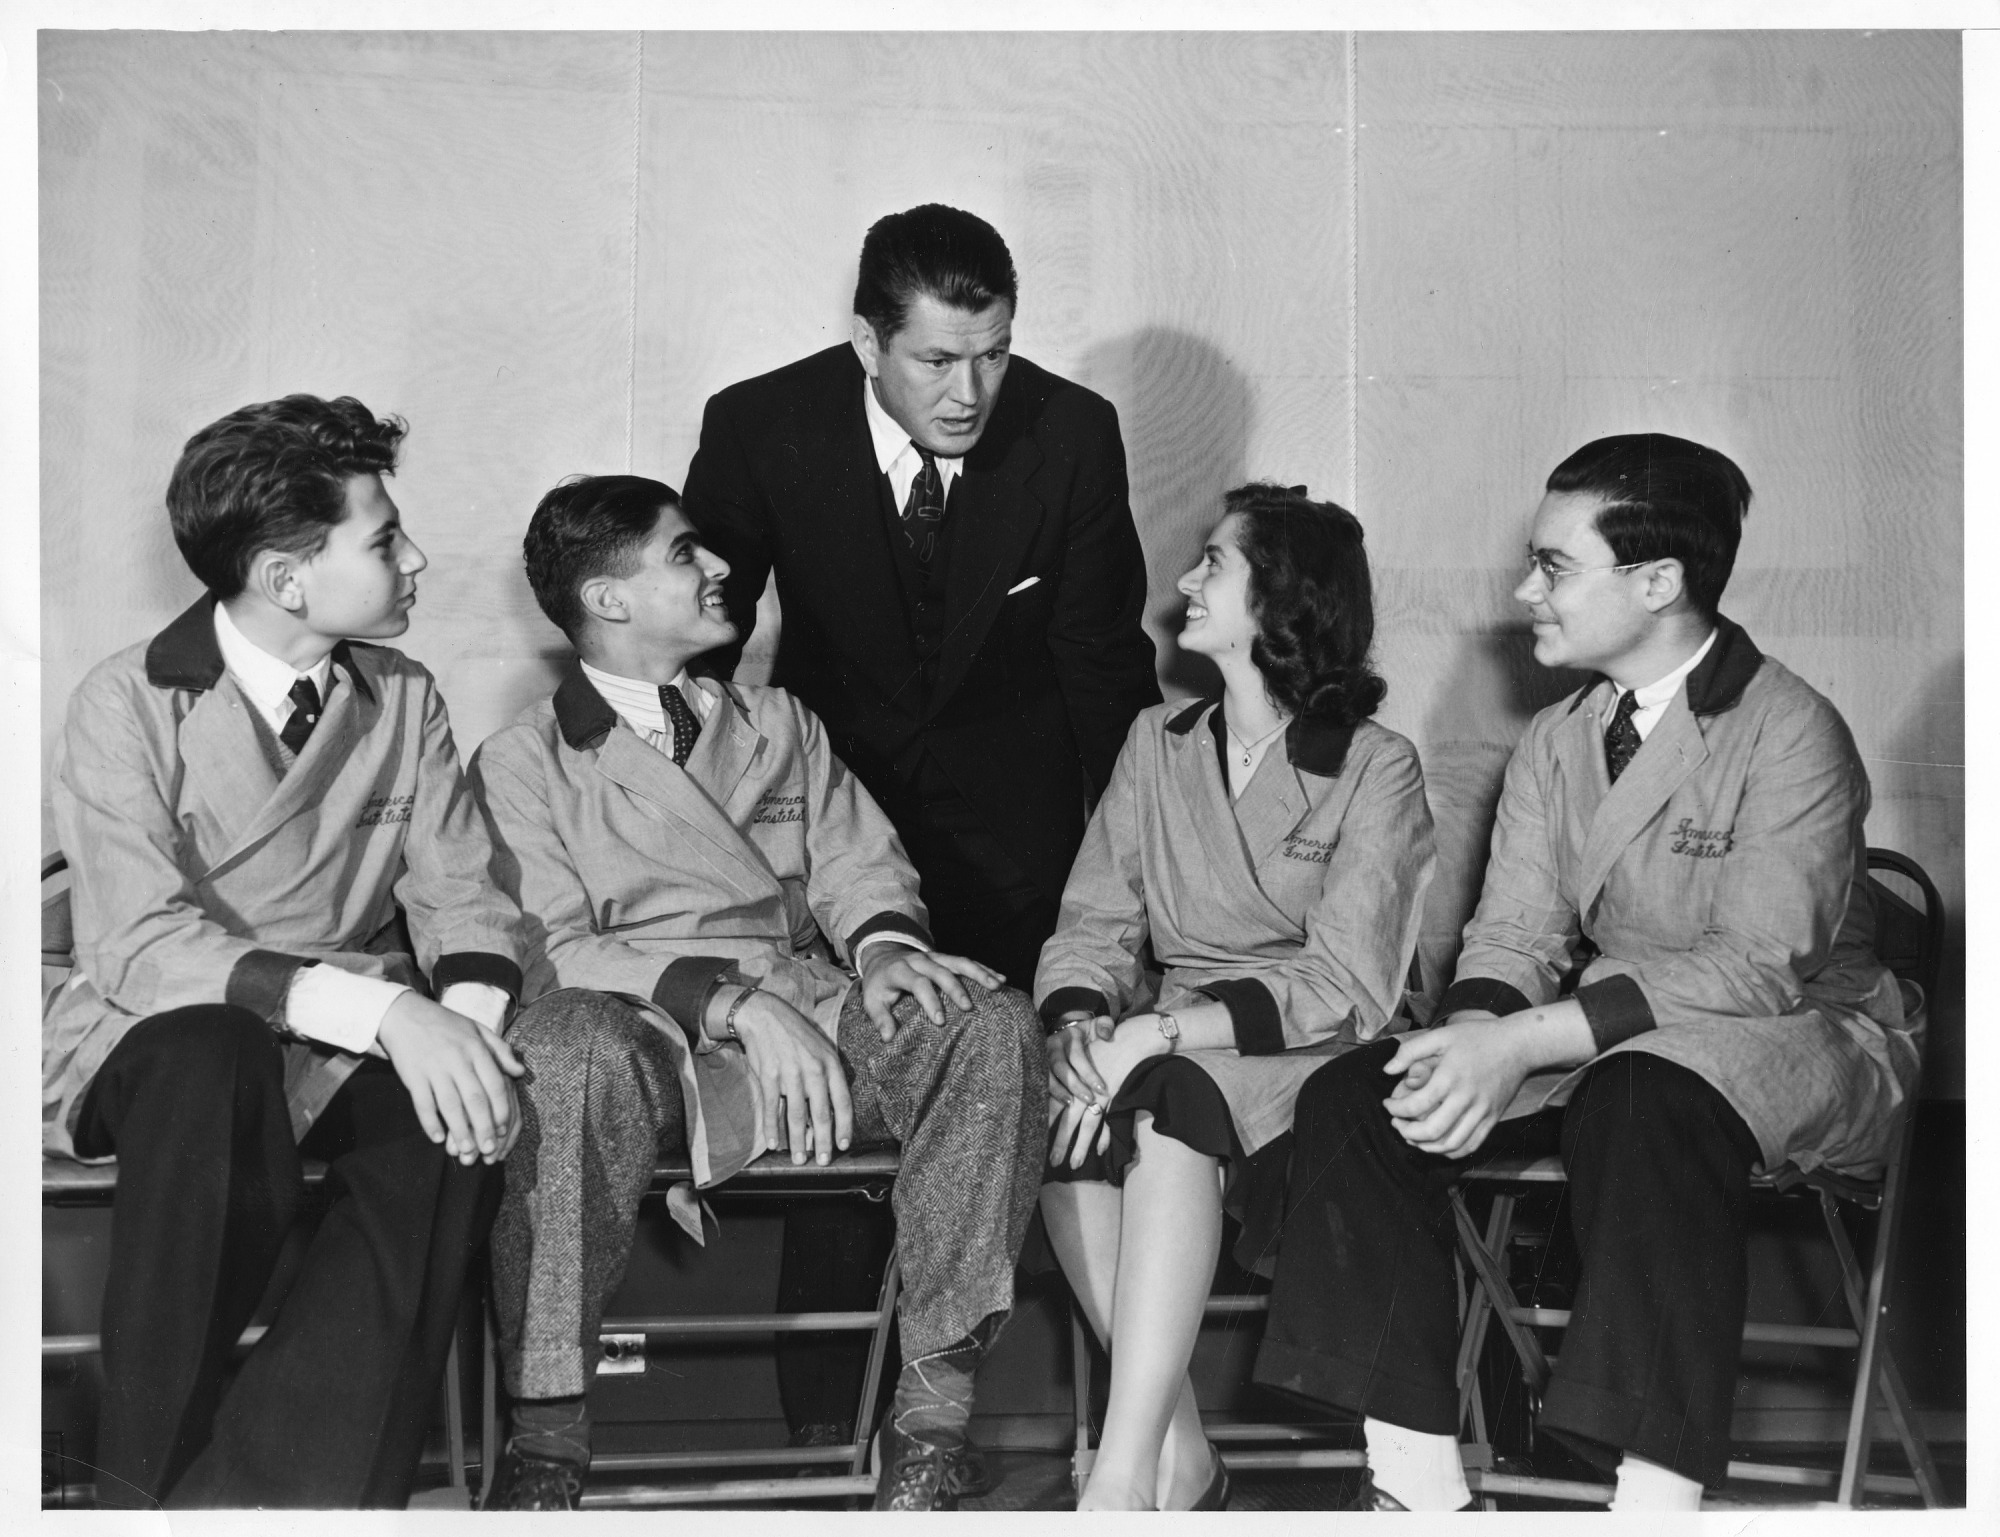 Gene Tunney (1897-1978) and science fair participants, September 24, 1940